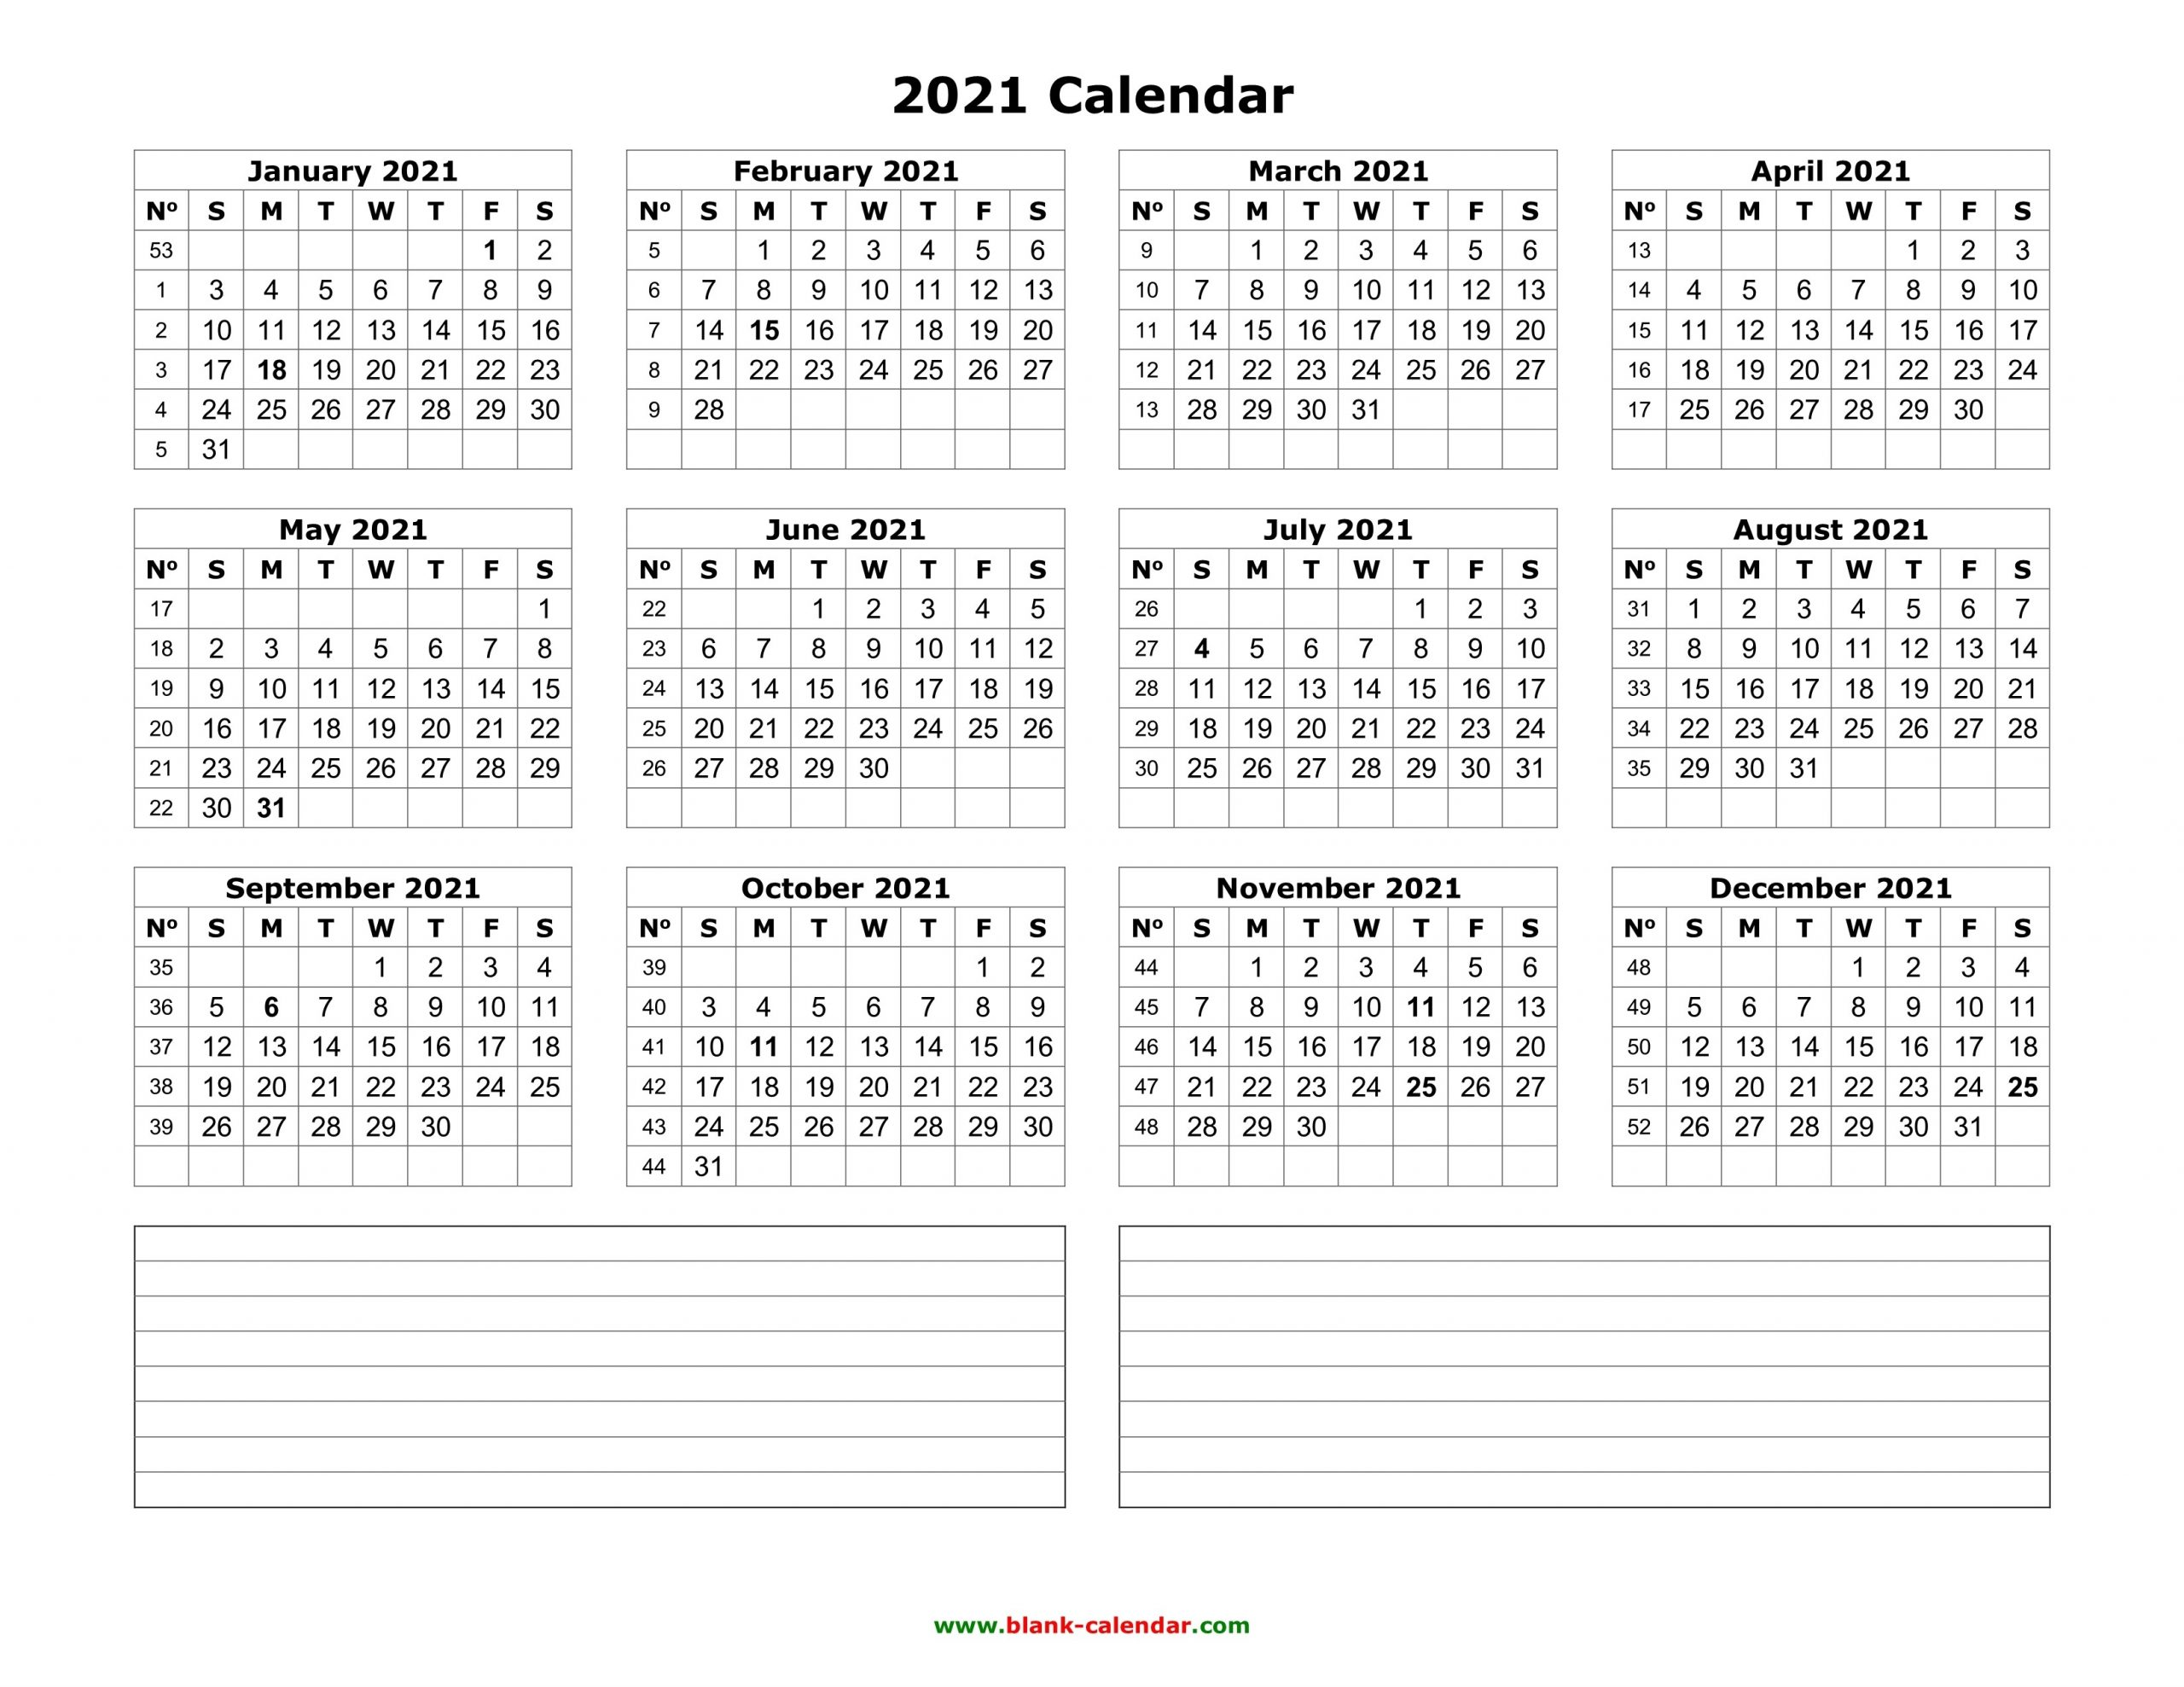 Yearly Calendar 2021 | Free Download And Print-2021 Print Free Calendars Without Downloading